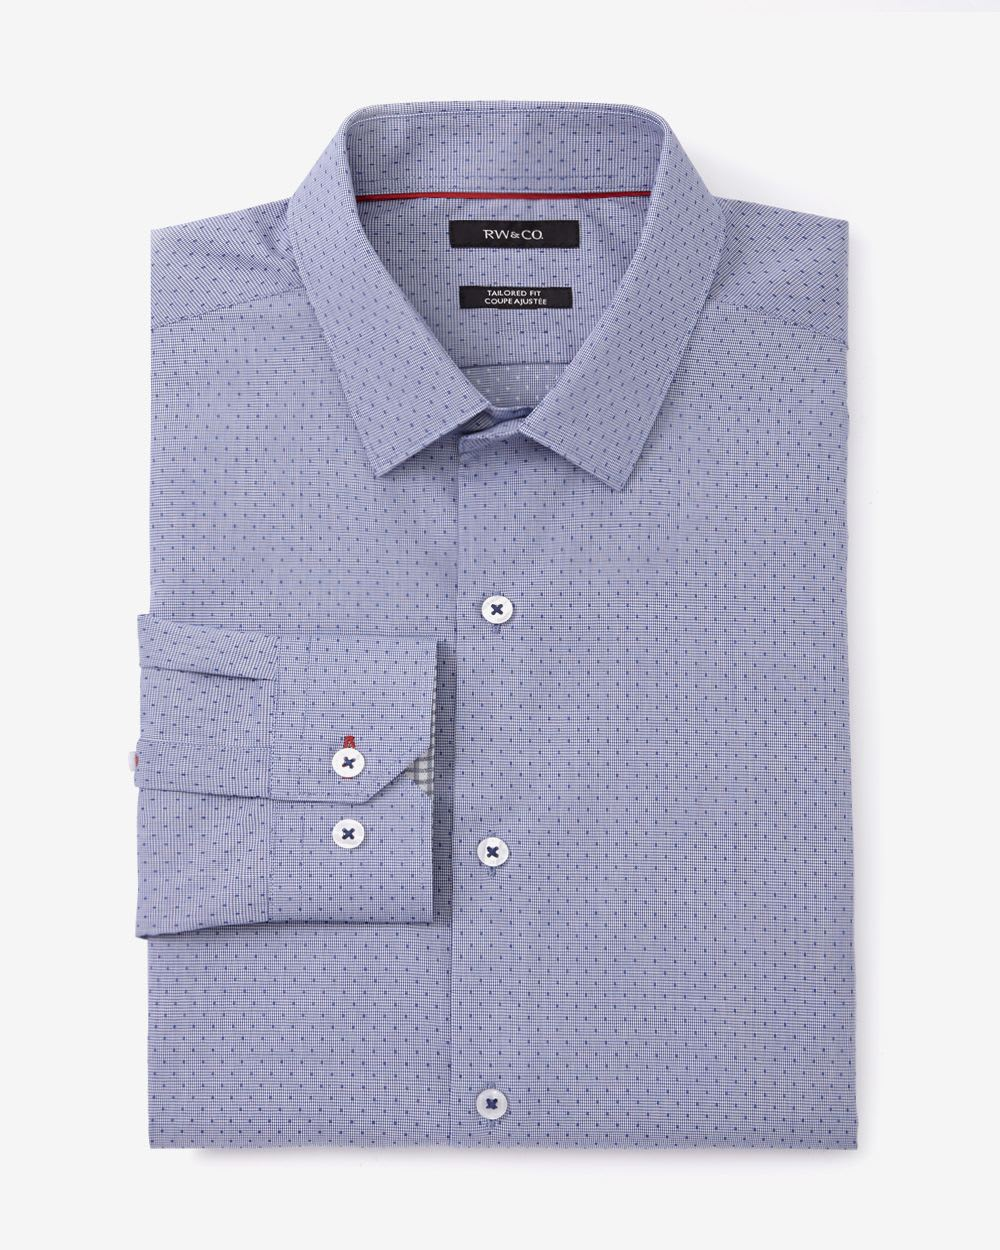 tailored fit printed dress shirt rw co